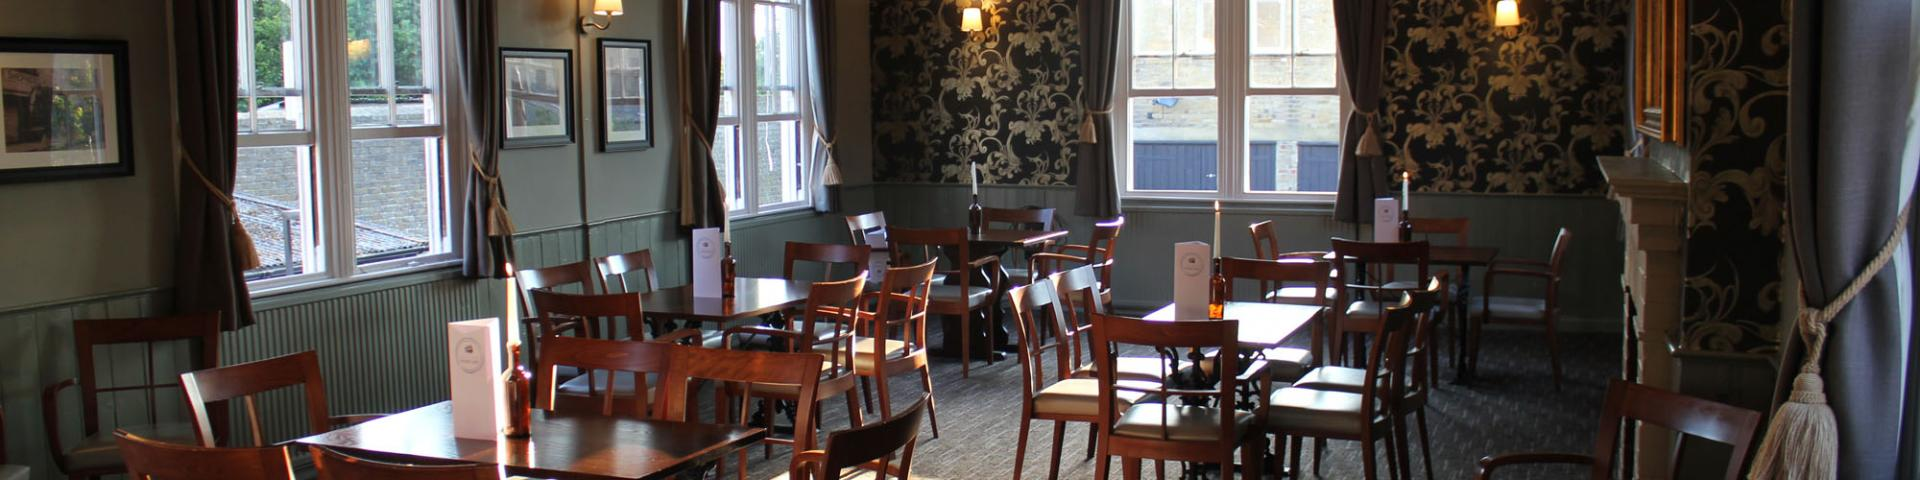 The Limes Faversham Function Room For Hire